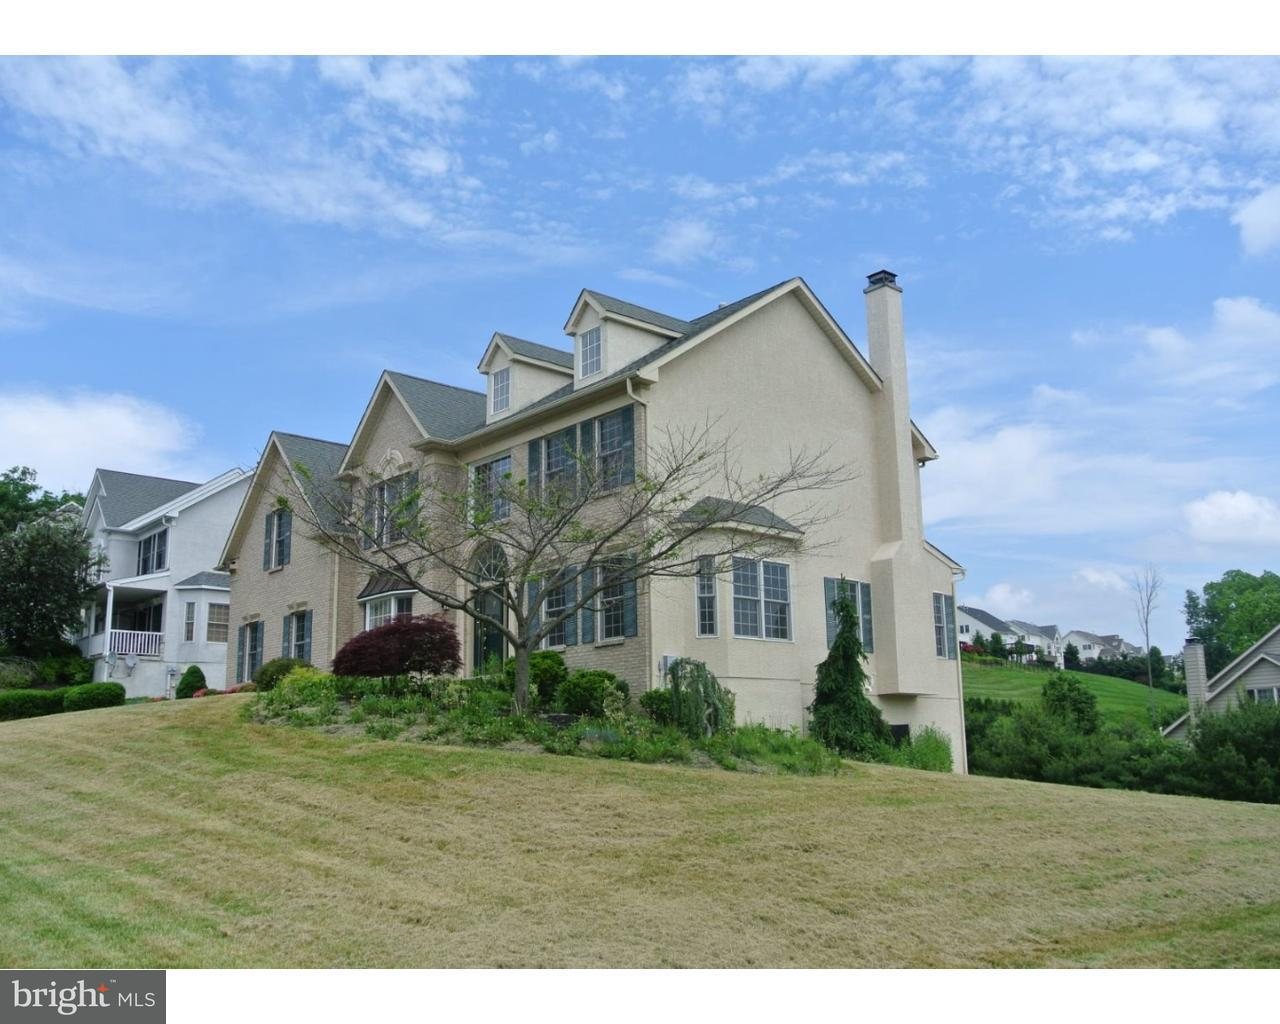 1201 REVERE DR, CHALFONT - Listed at $517,900, CHALFONT